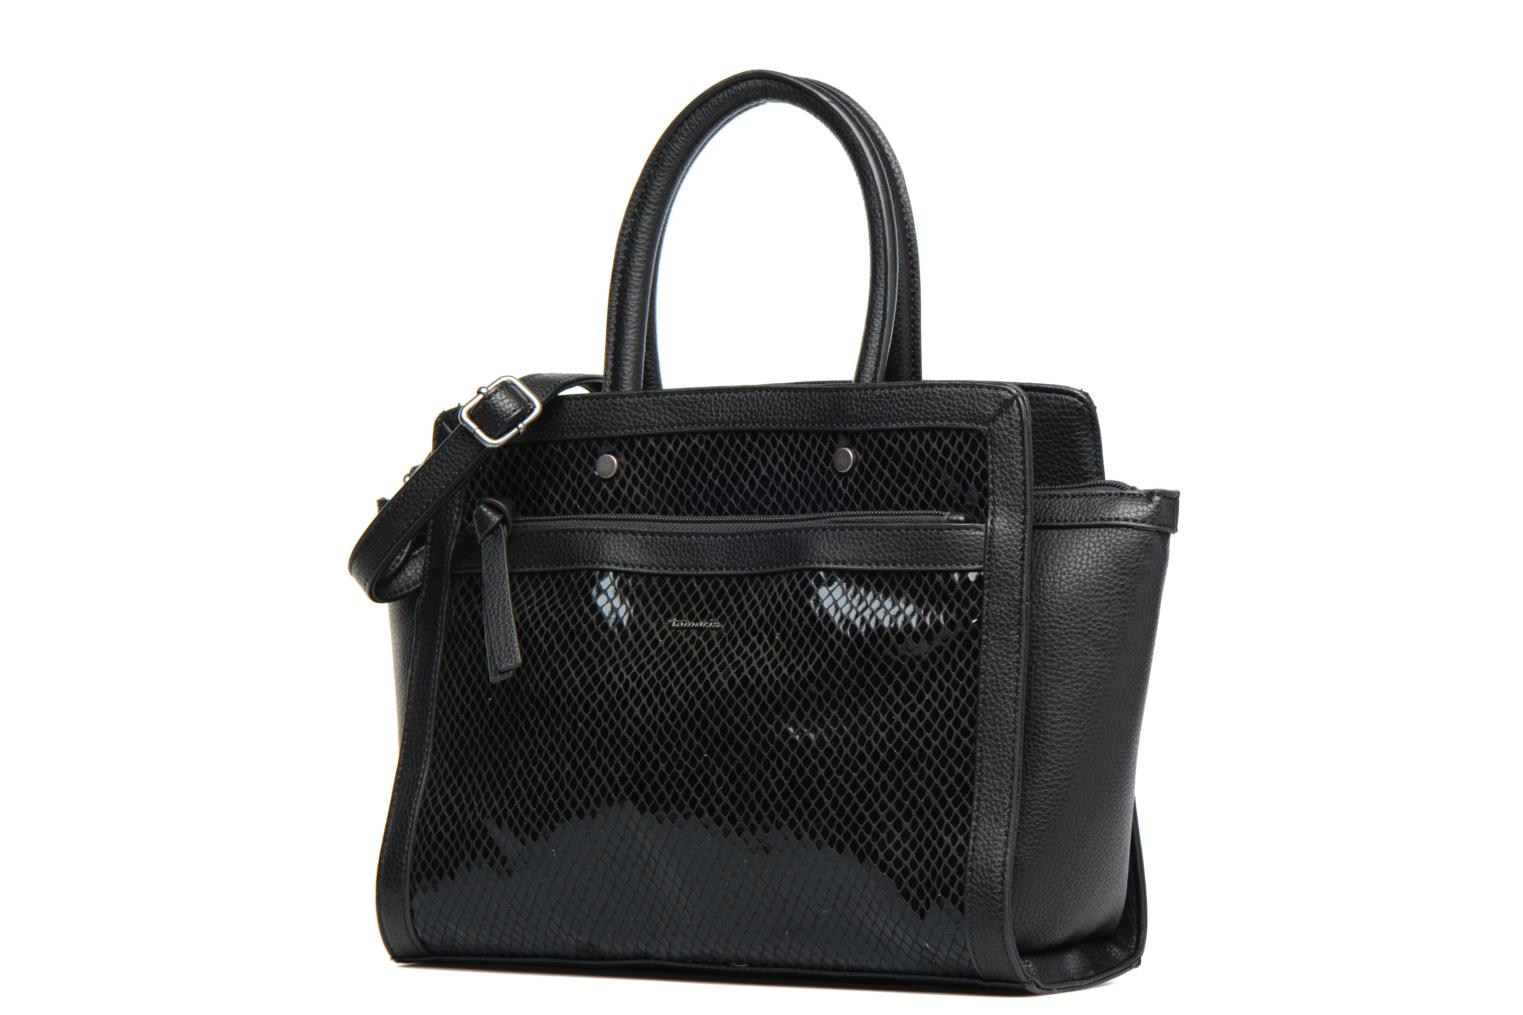 JIMMY Handbag Black Comb